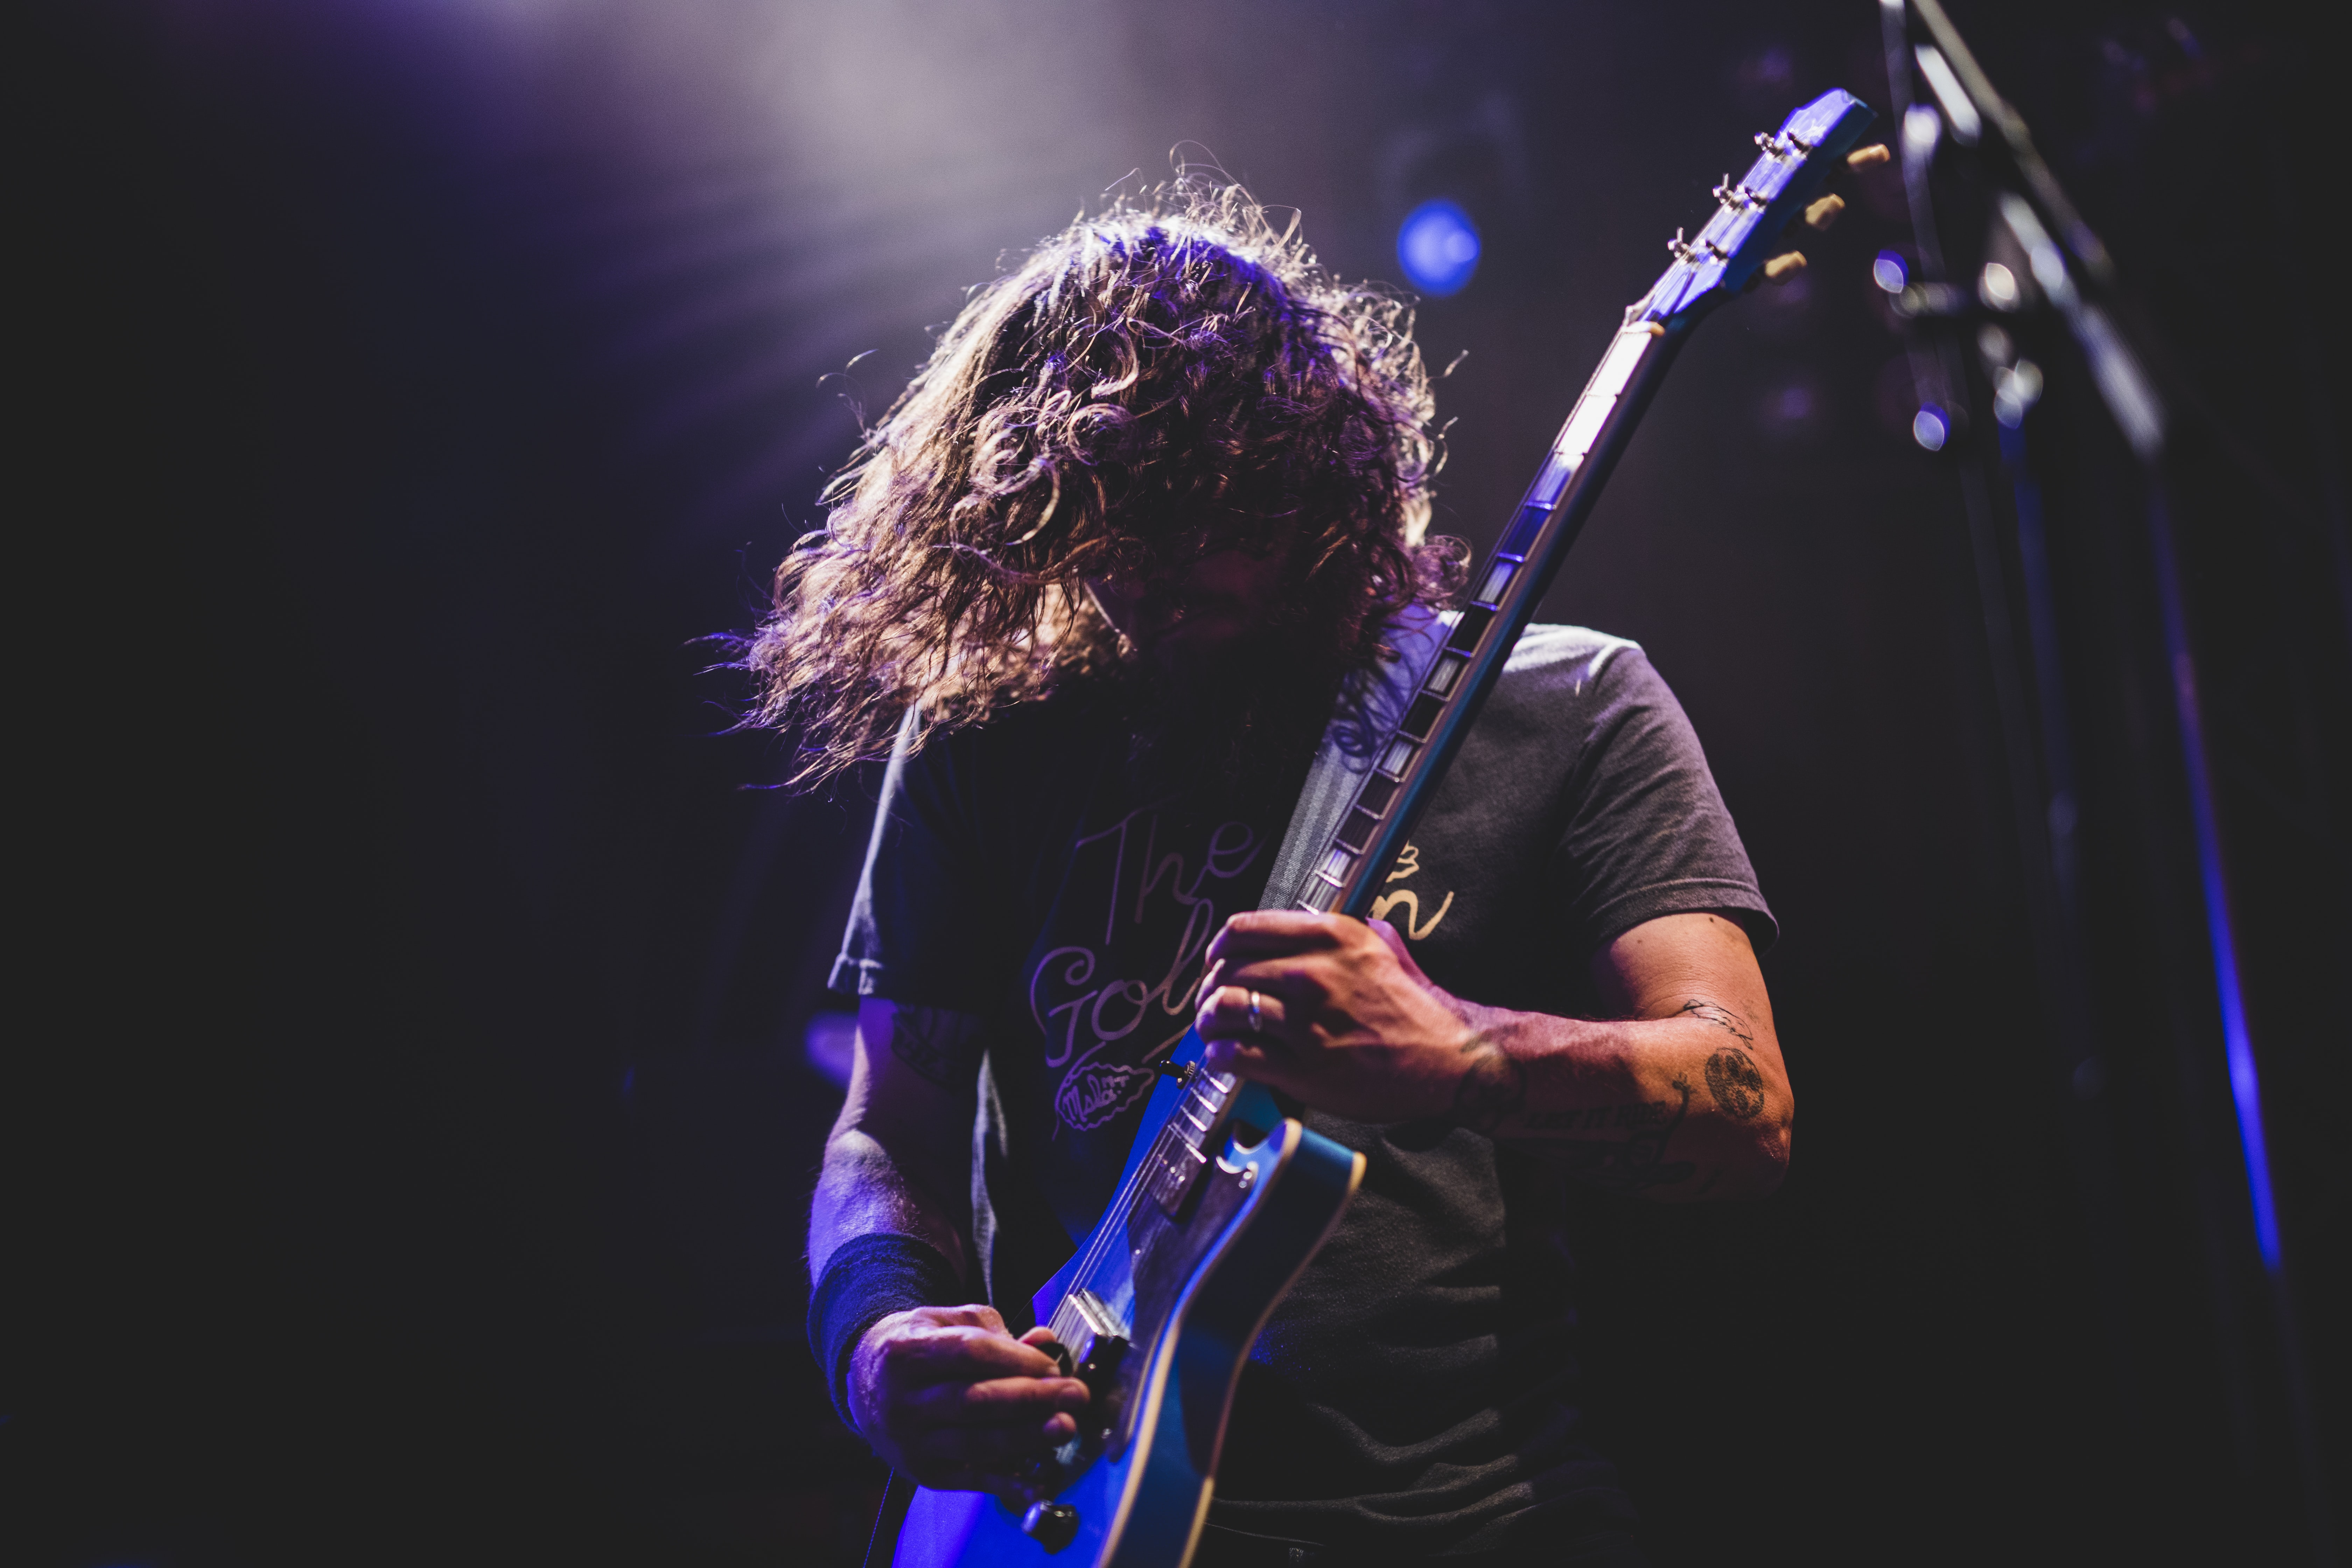 A long-haired man in a t-shirt  playing an electric guitar on stage